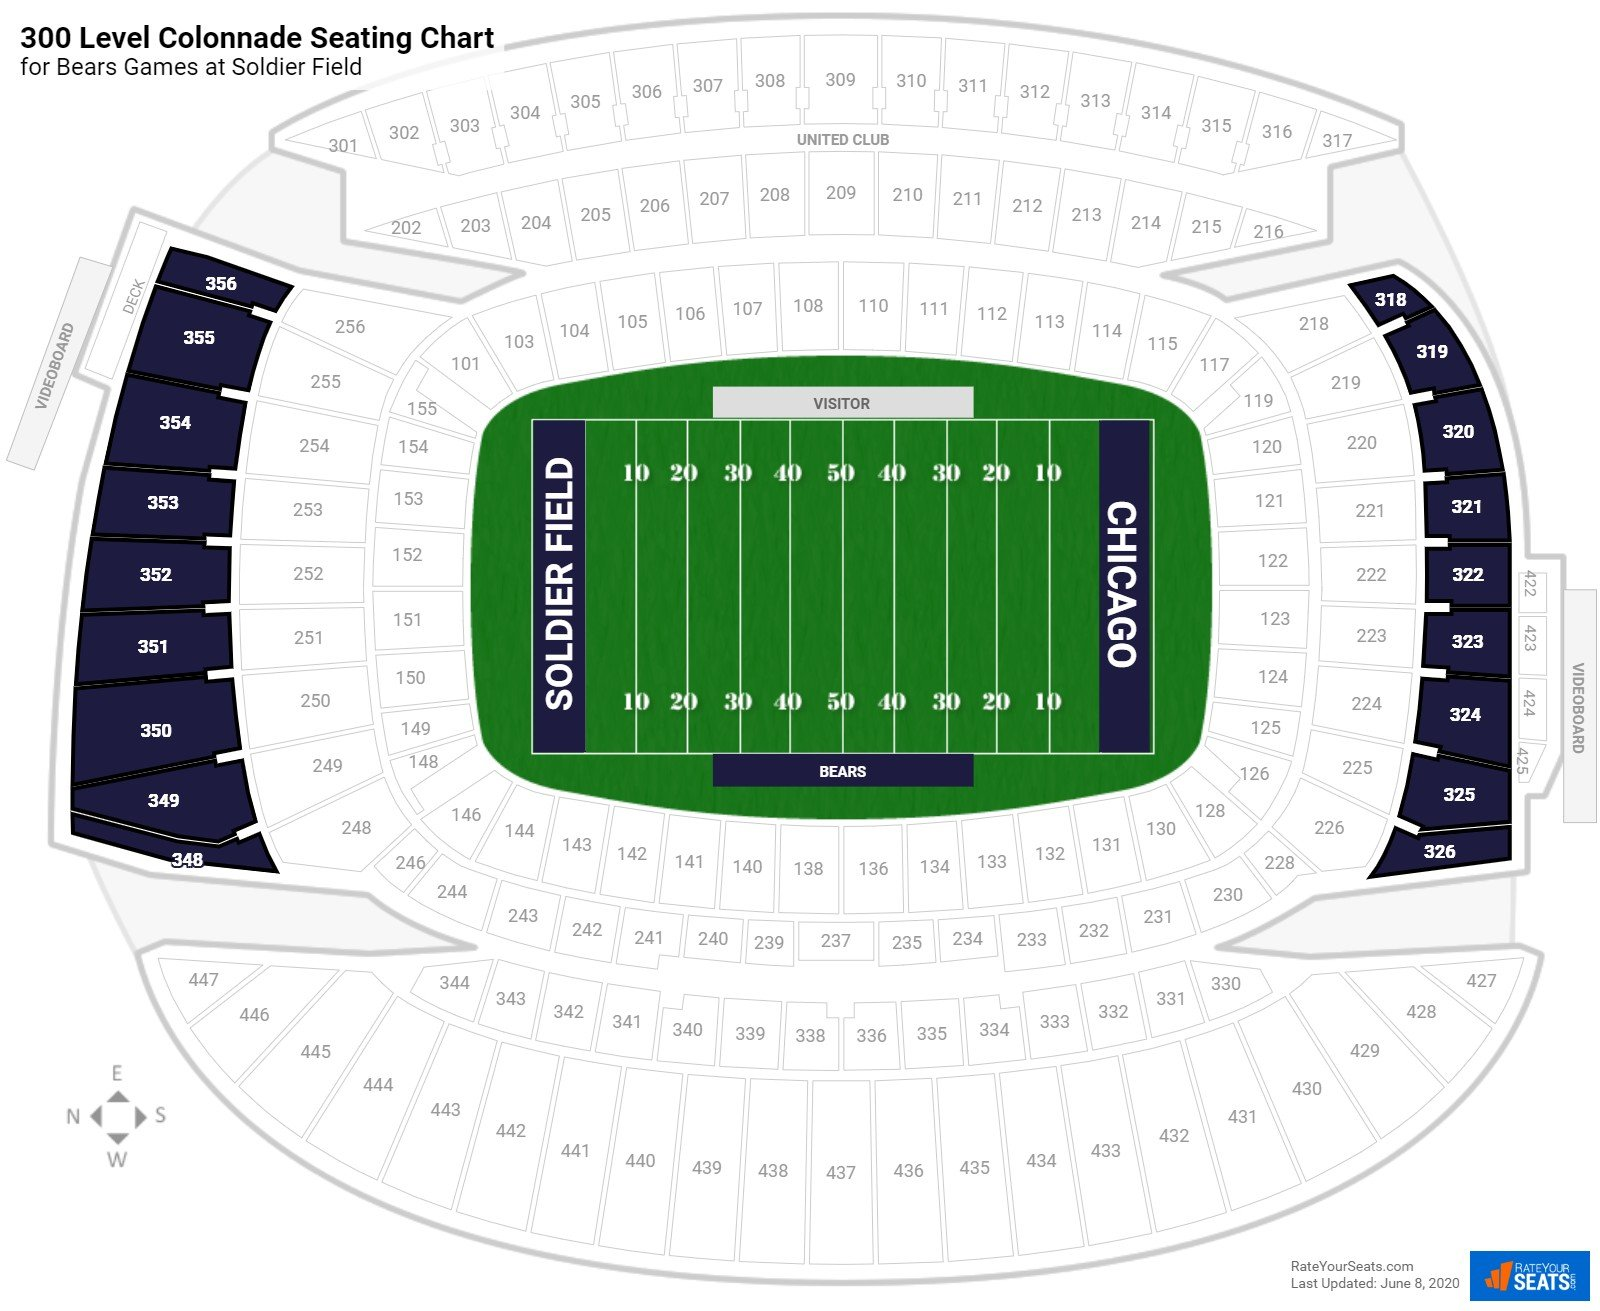 Soldier Field 300 Level Colonnade seating chart